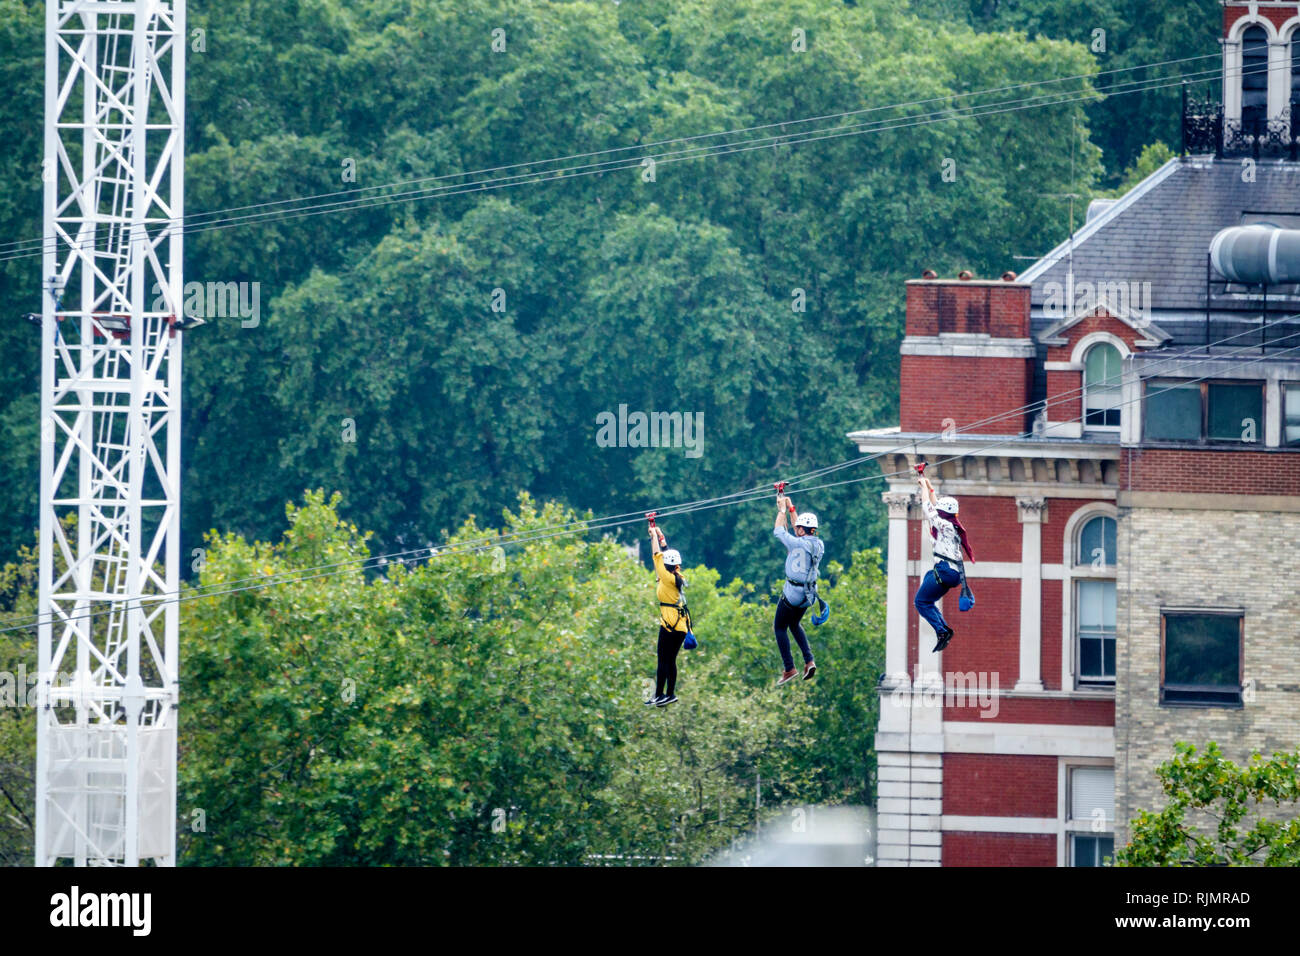 London England United Kingdom Great Britain South Bank Lambeth urban zip wire zip line man woman - Stock Image